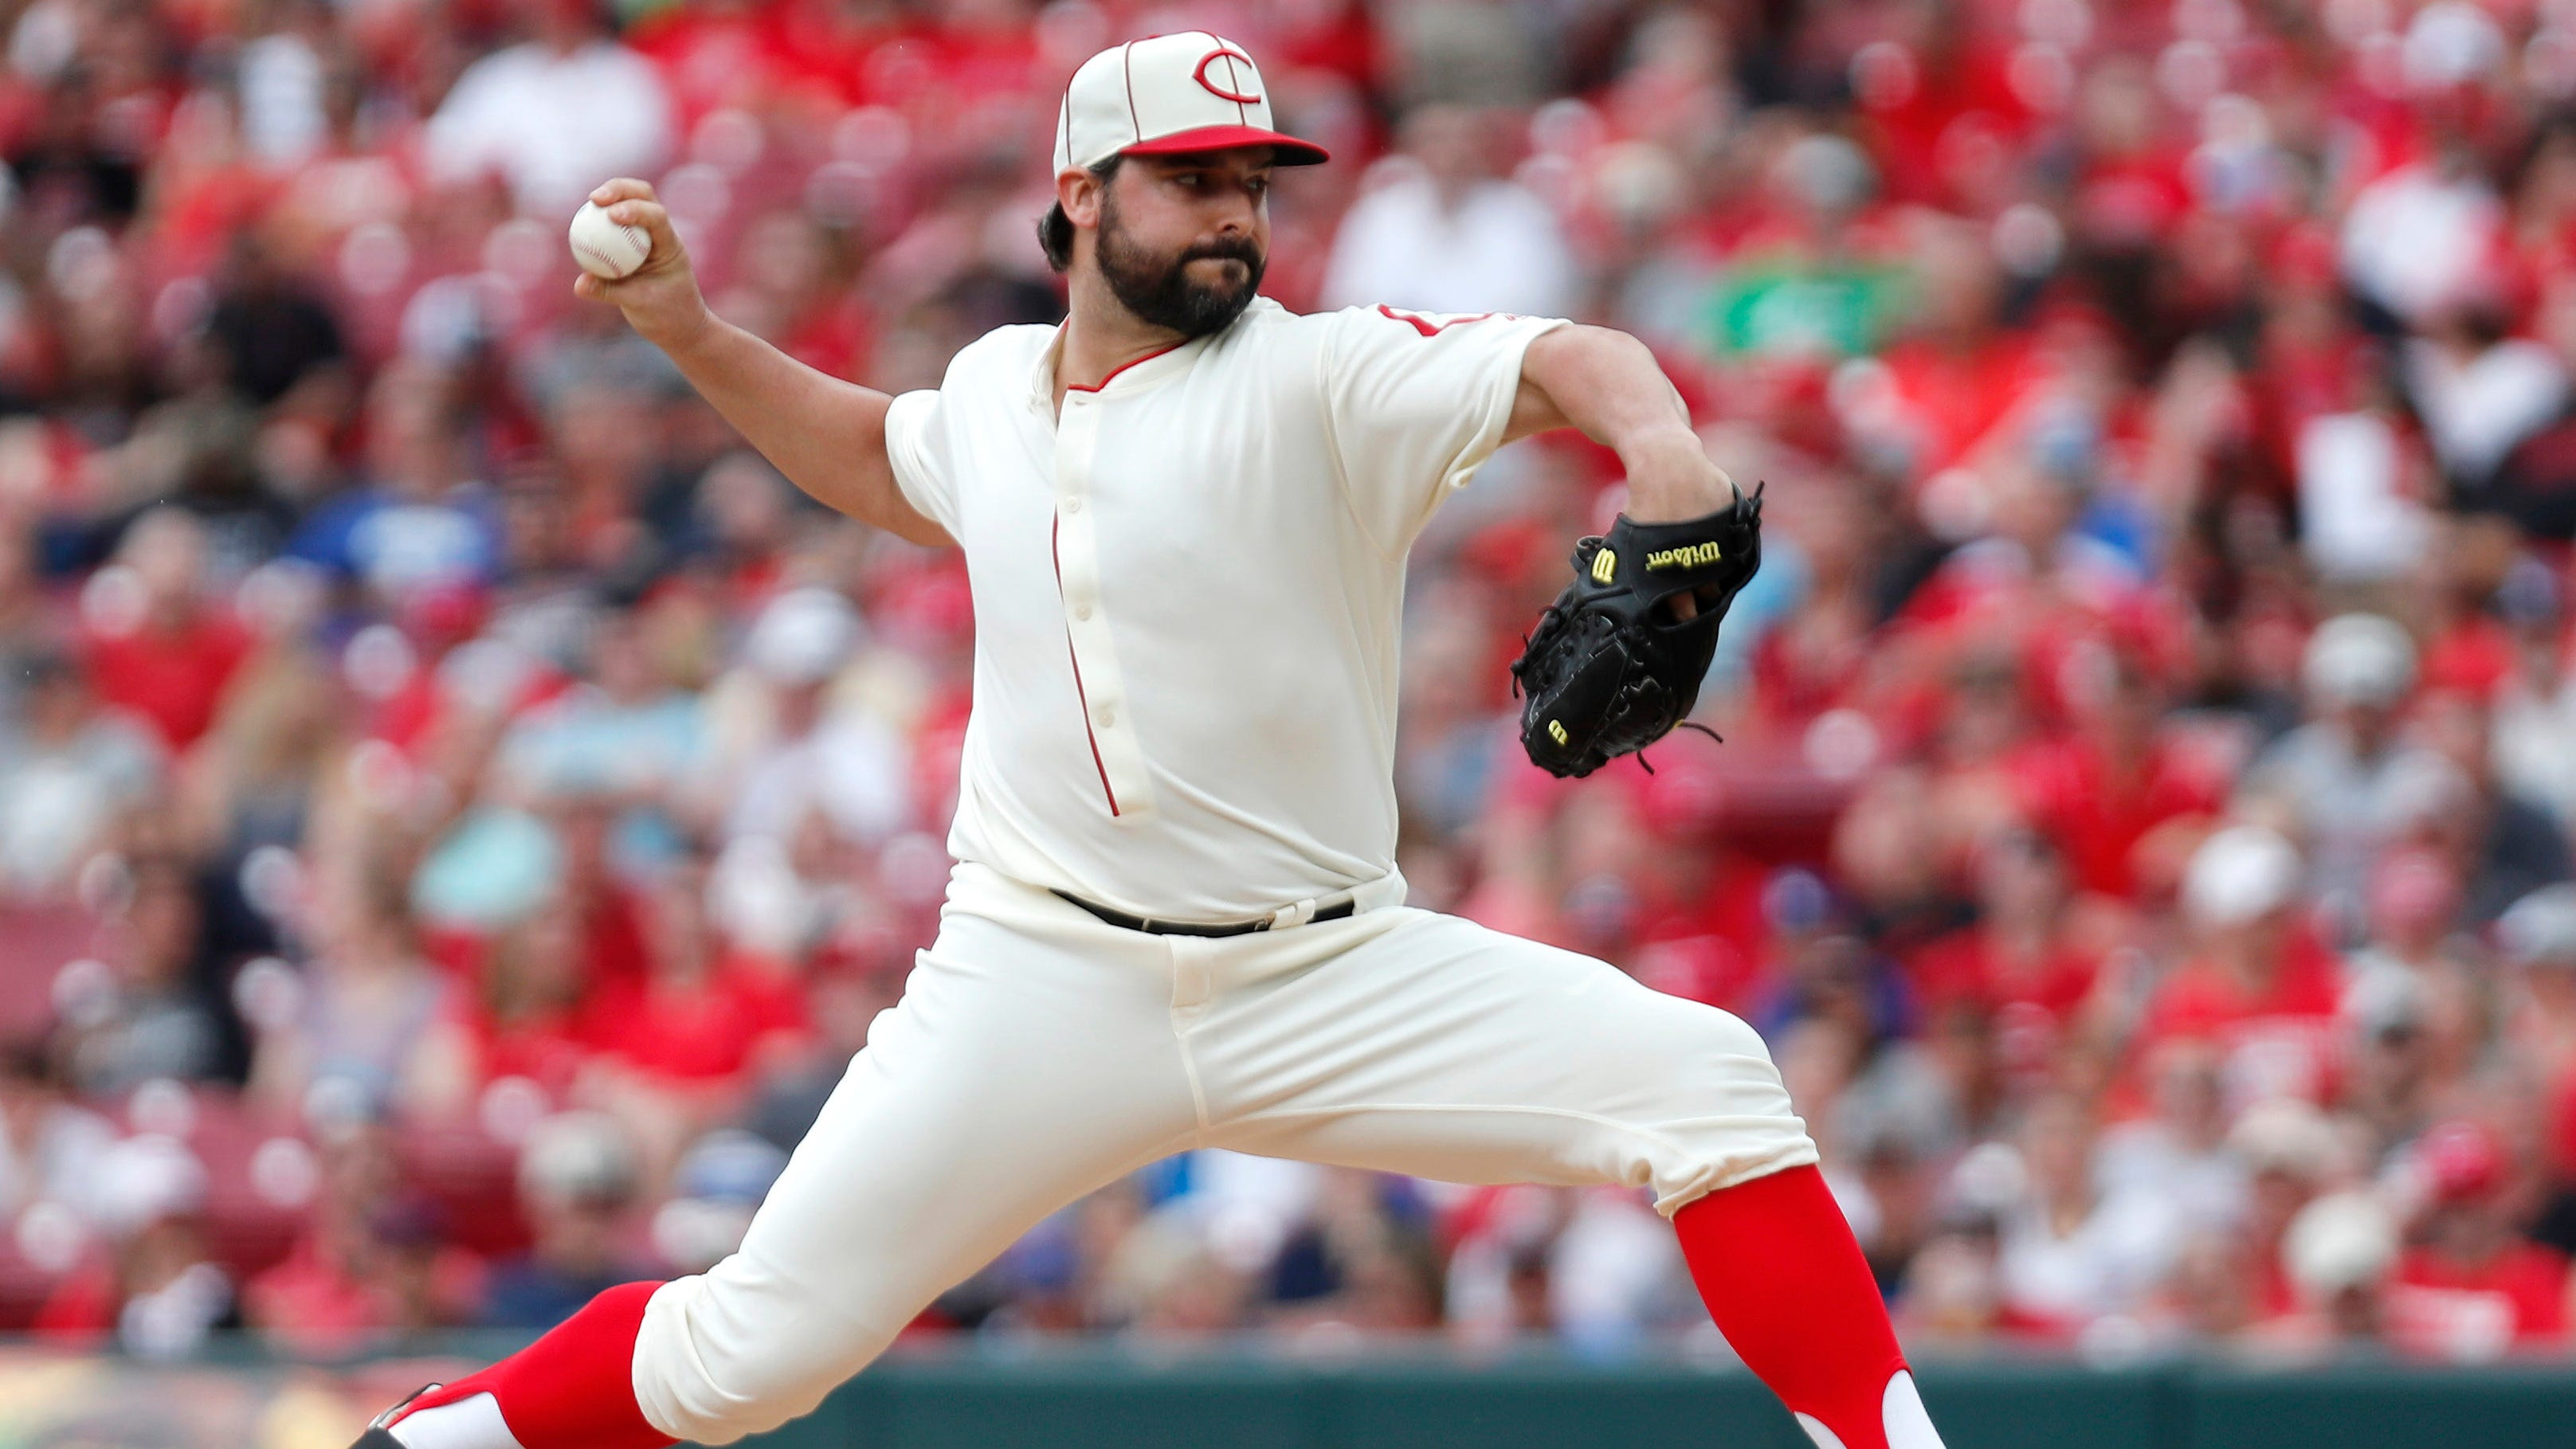 Tanner Roark expresses frustration about early hook in Reds loss to Dodgers - Cincinnati.com